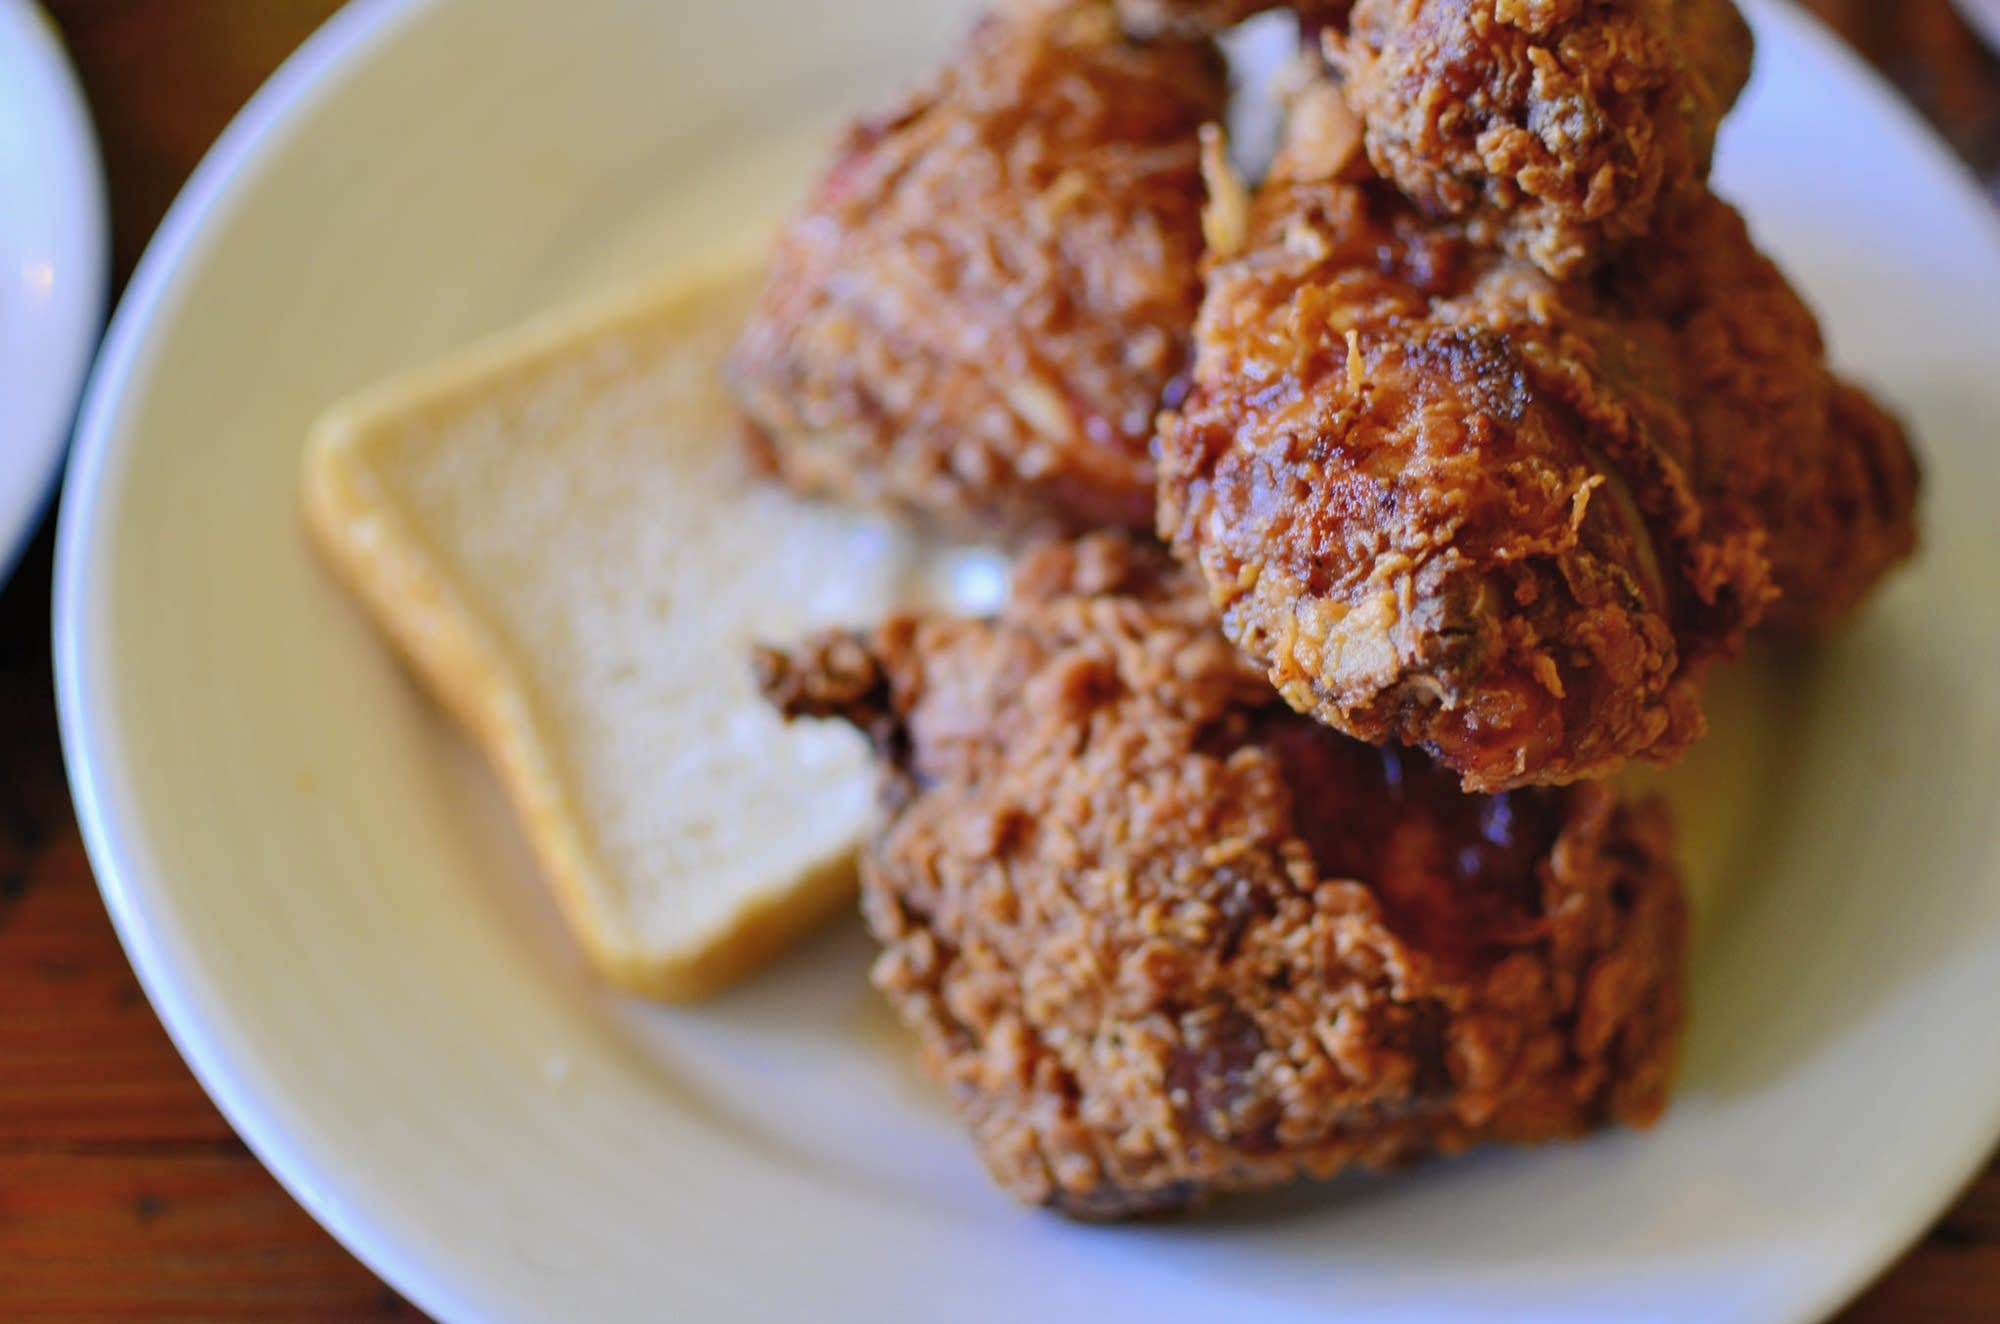 The Southern fried chicken from Revival